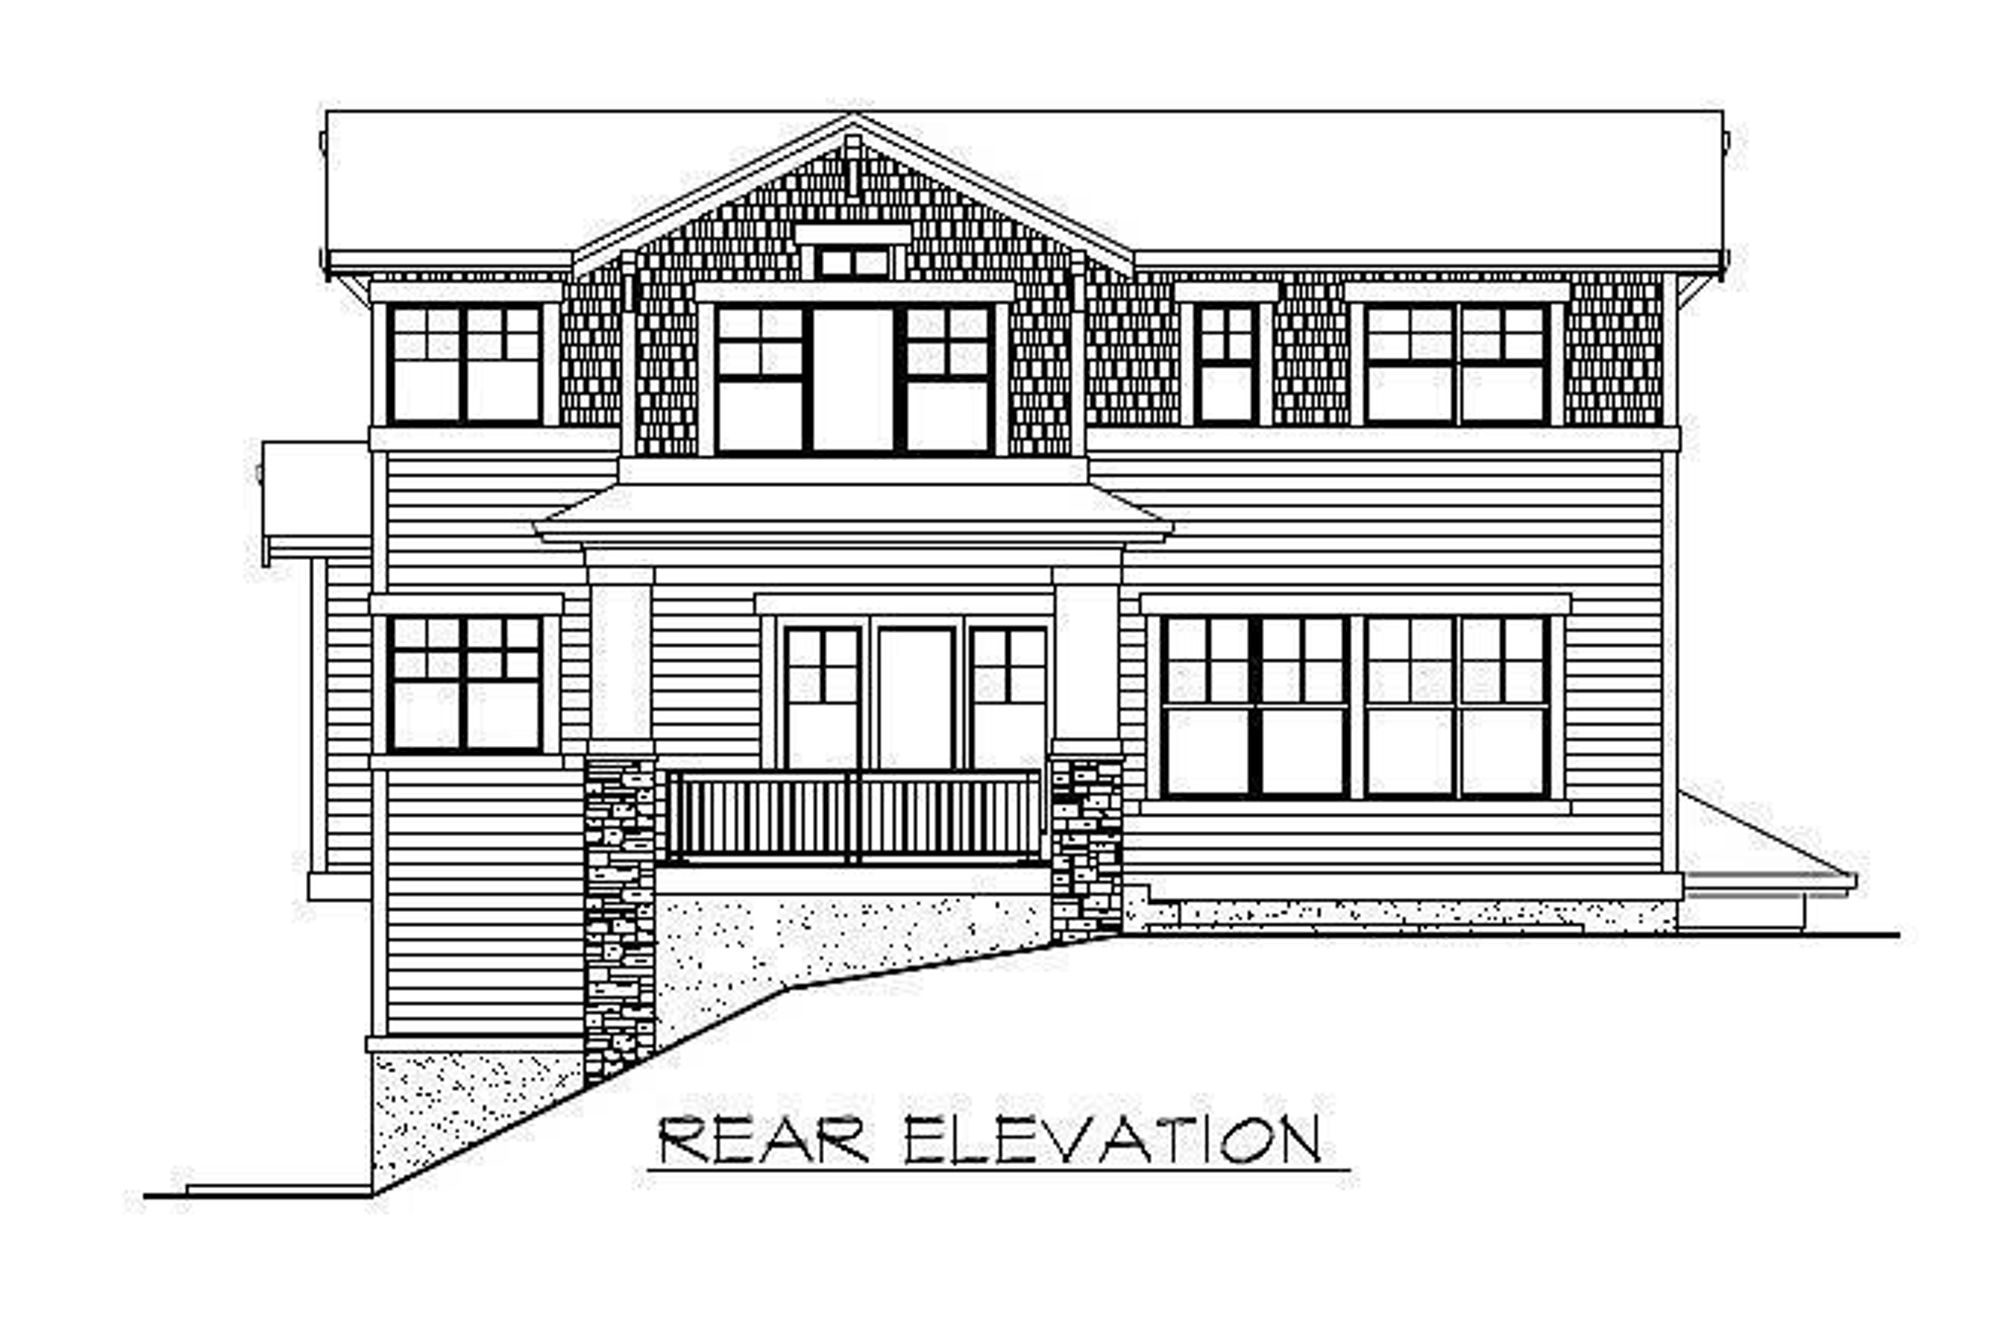 The Florence Avante Rear Elevation Drawing